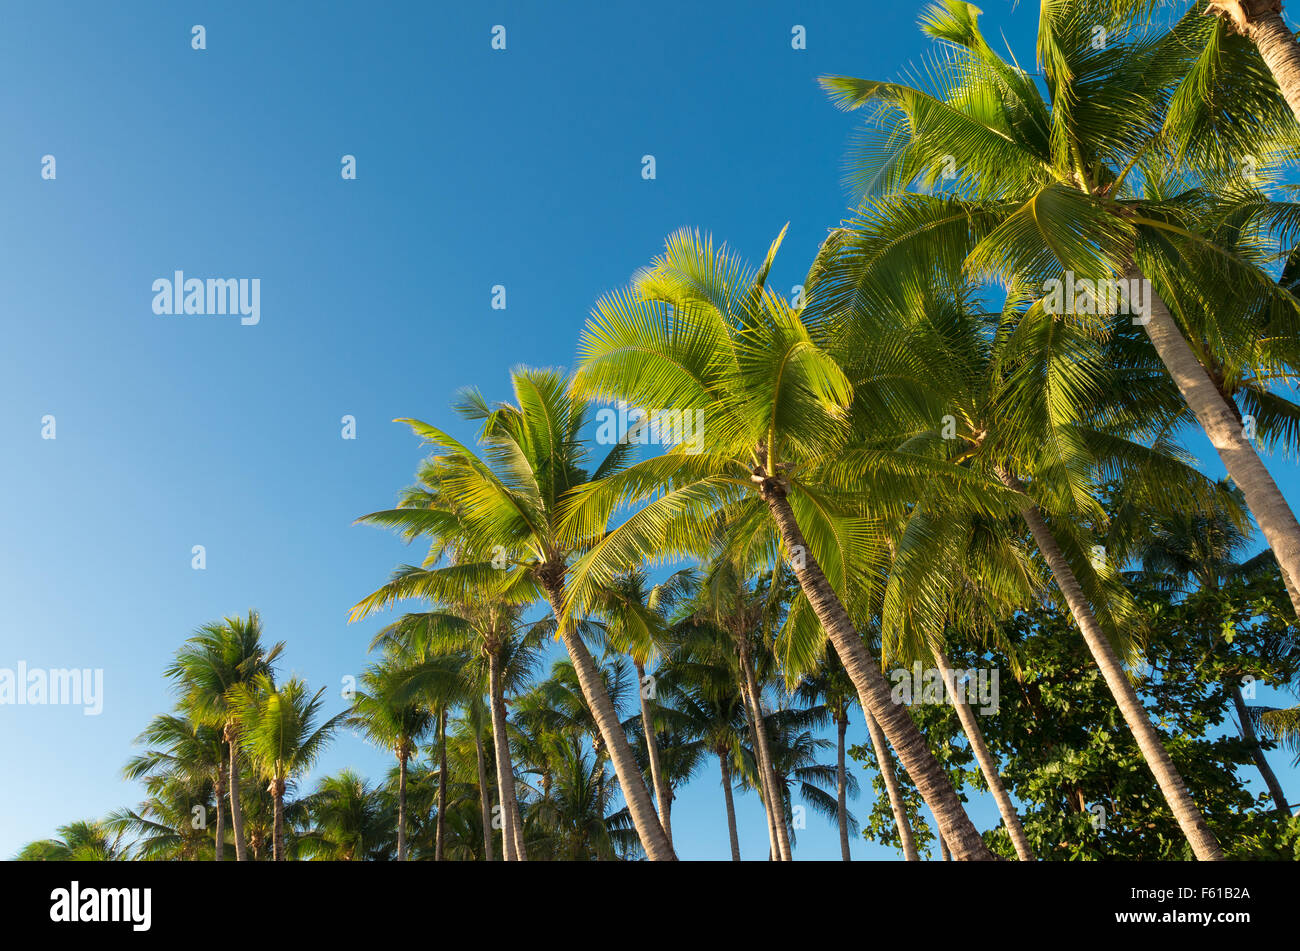 row of palm trees against a blue sky - Stock Image